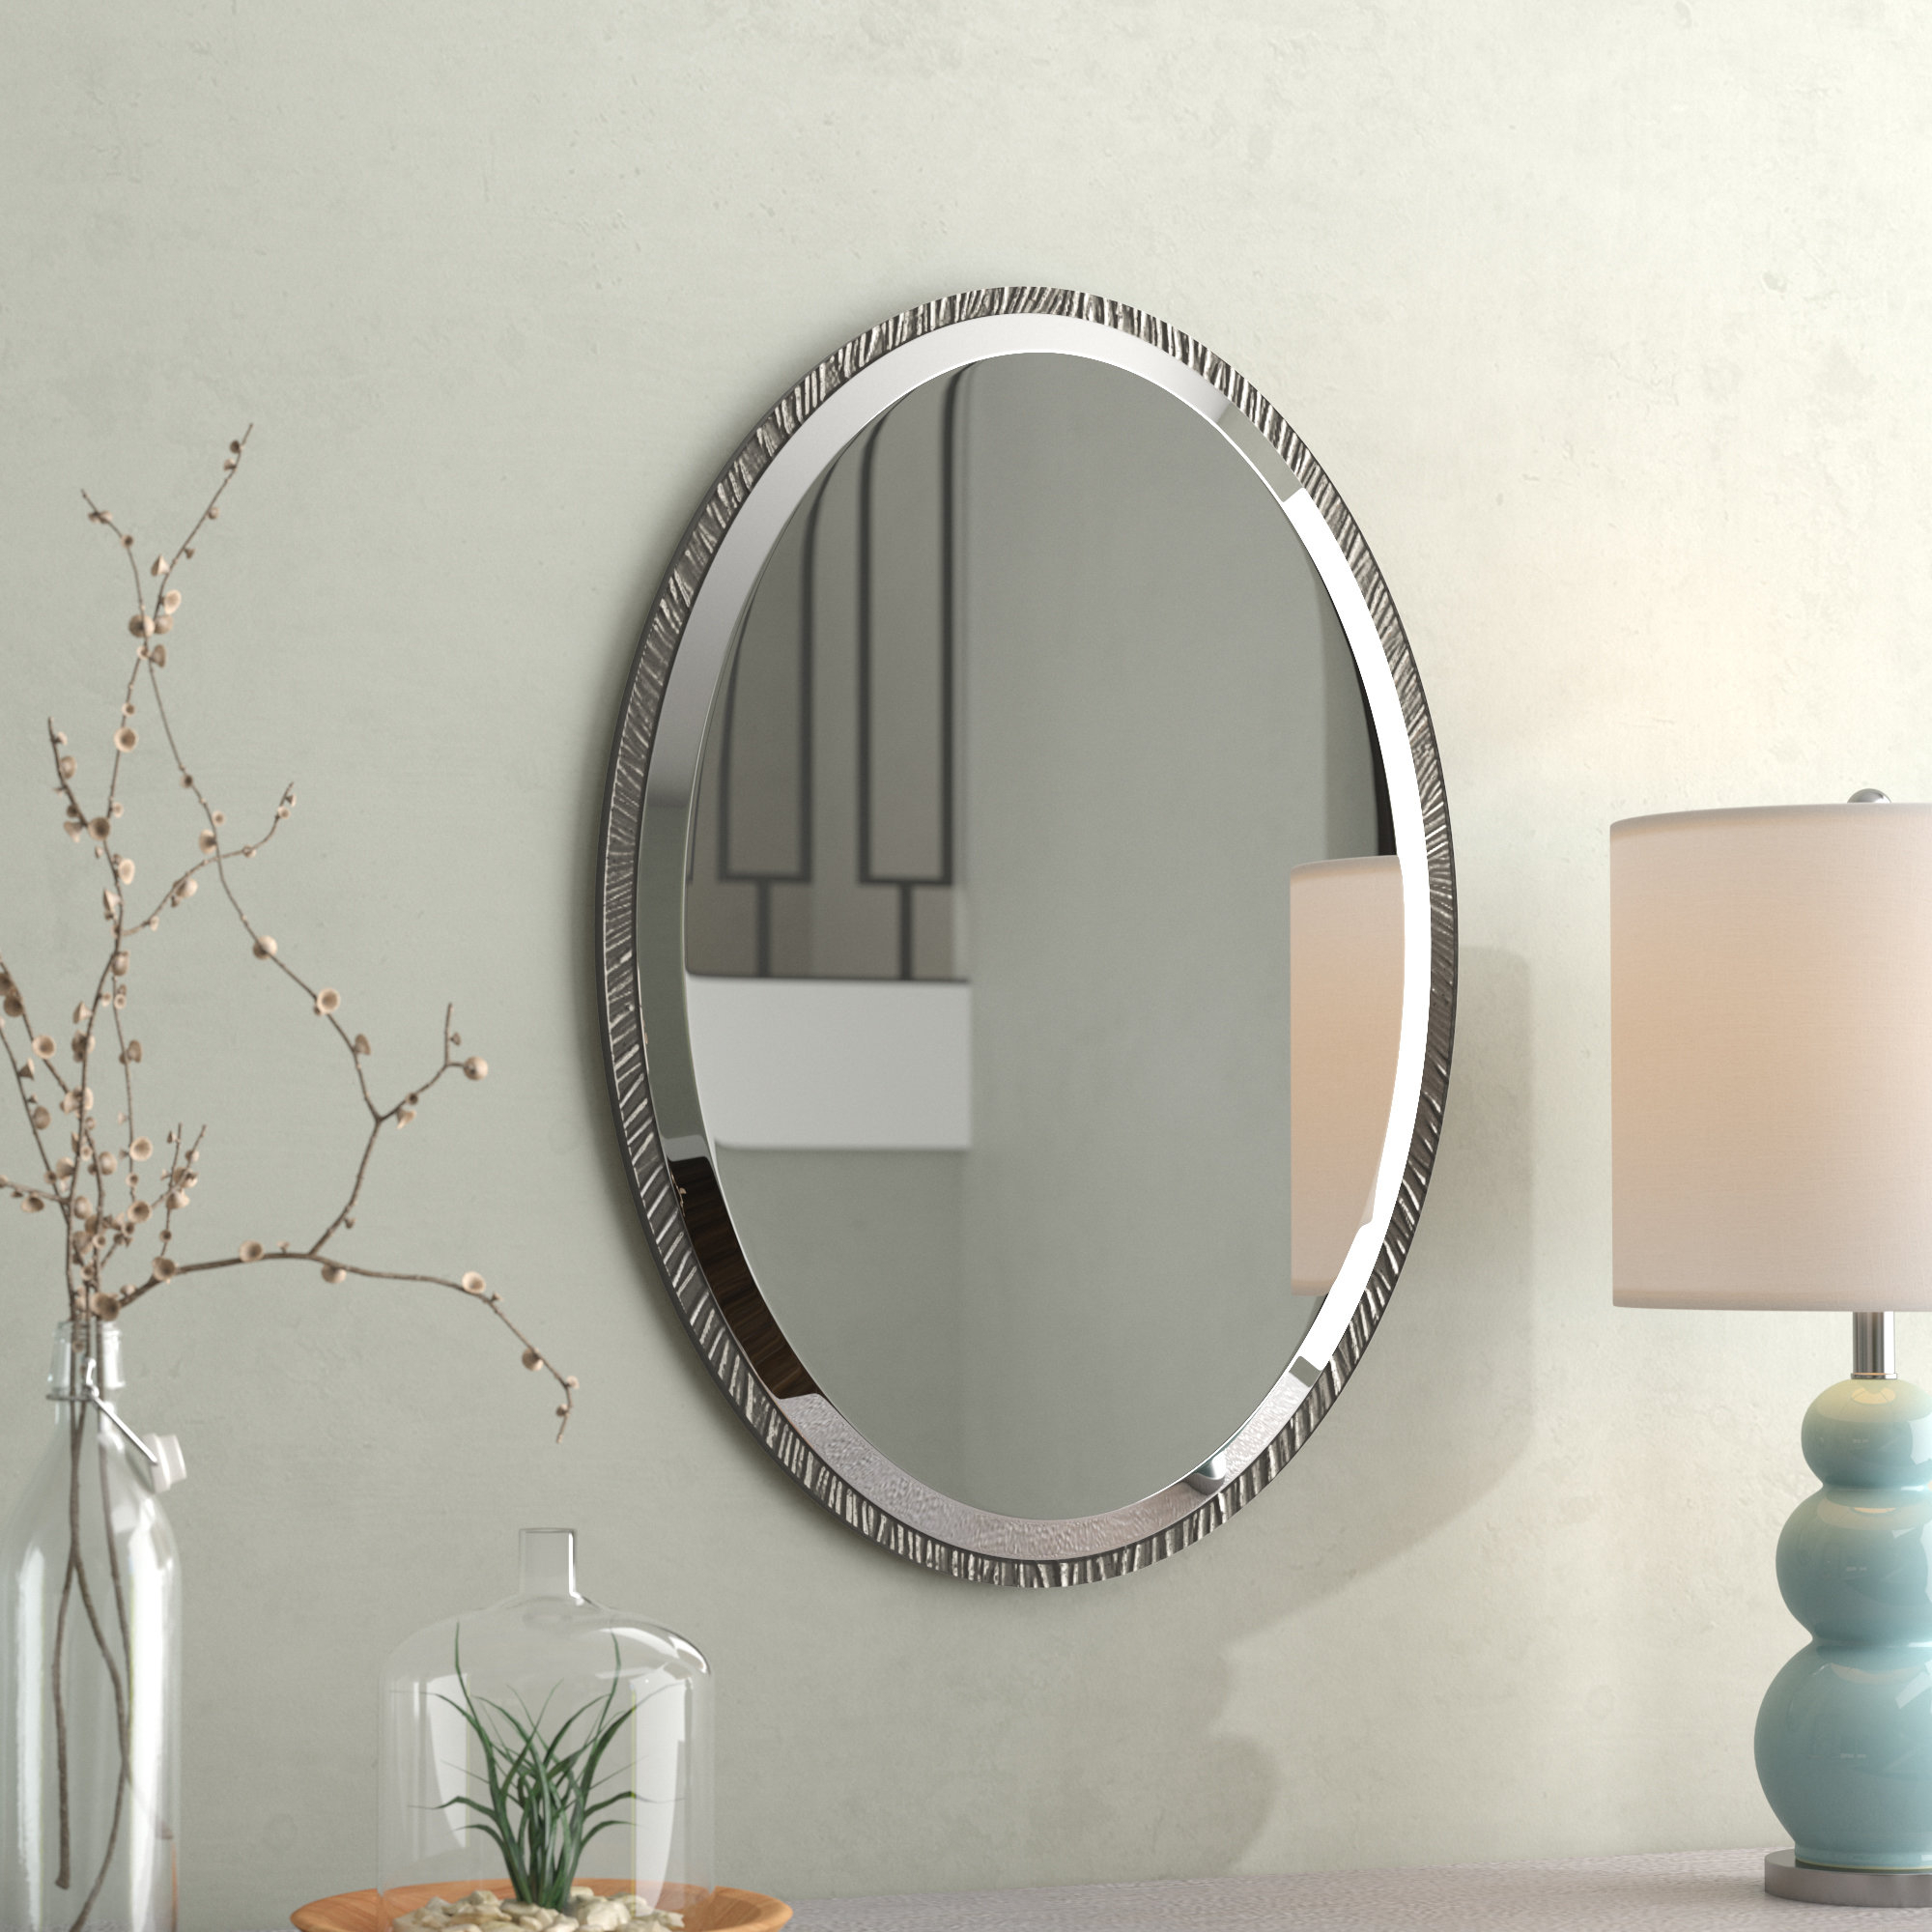 Oval Ornate Wall Mirror | Wayfair Inside Burnes Oval Traditional Wall Mirrors (Image 13 of 20)